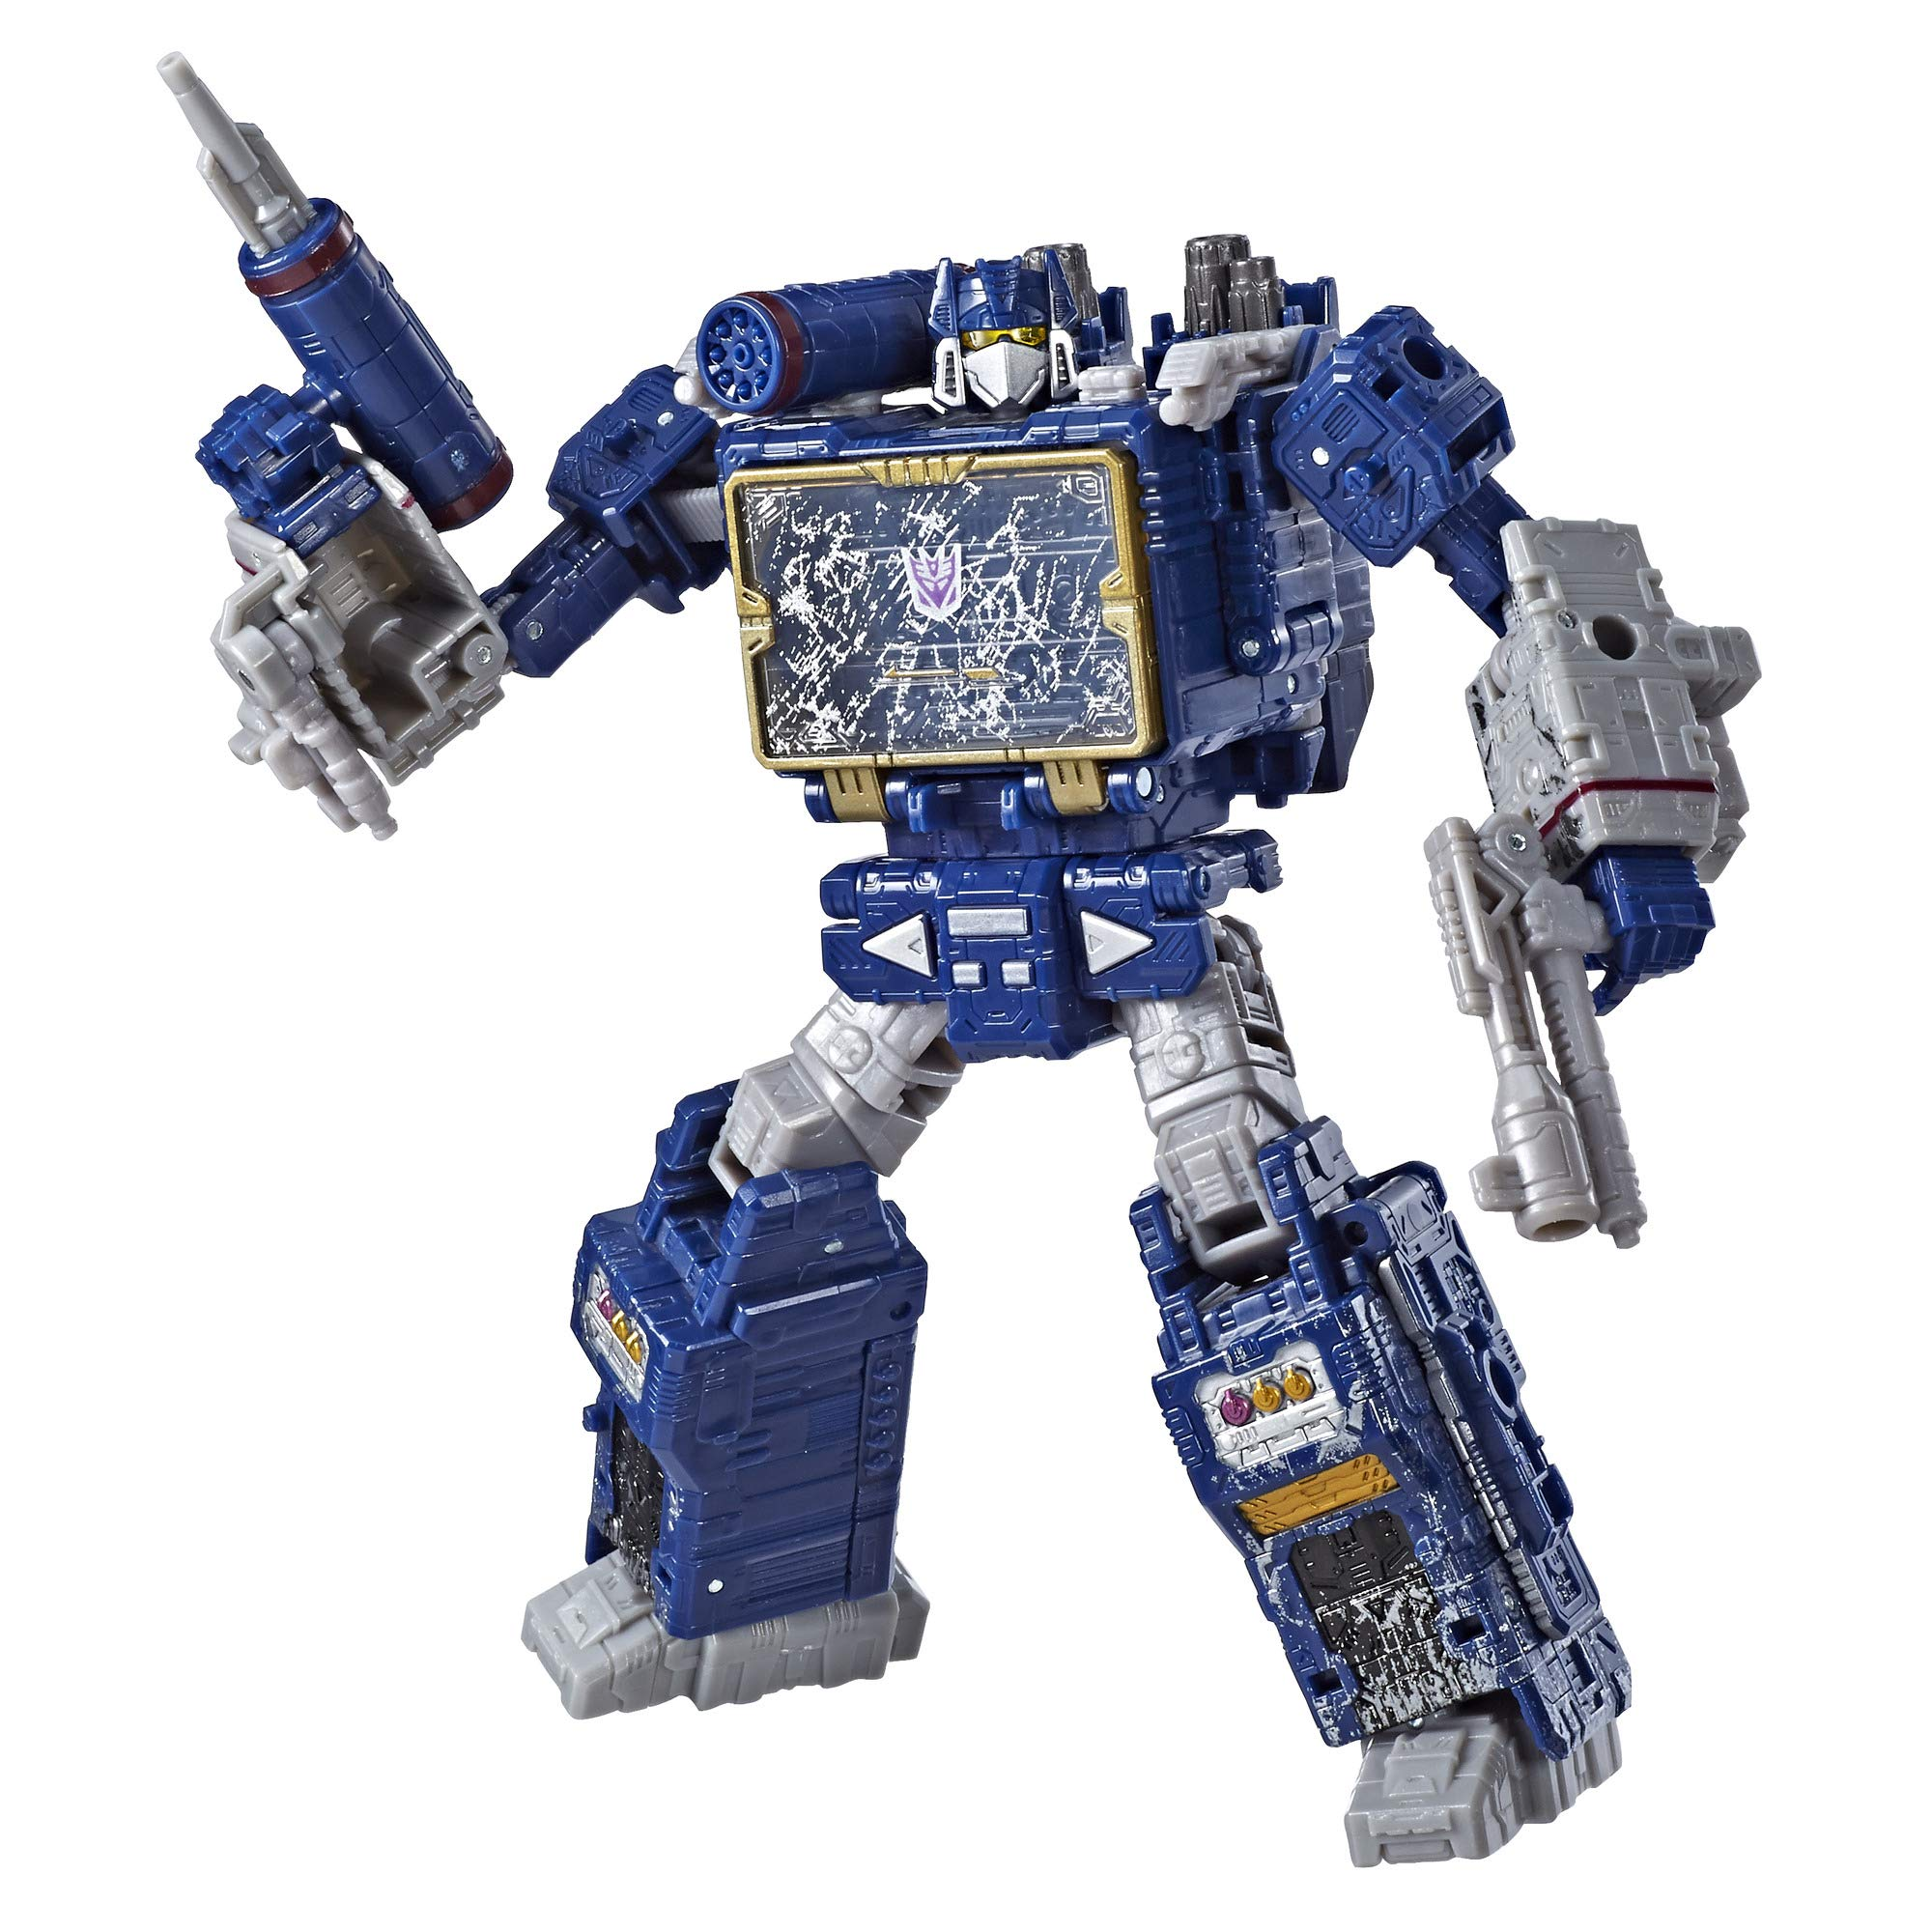 Transformers Toys Generations War for Cybertron Voyager Wfc-S25 Soundwave Action Figure - Siege Chapter - Adults & Kids Ages 8 & Up, 7''